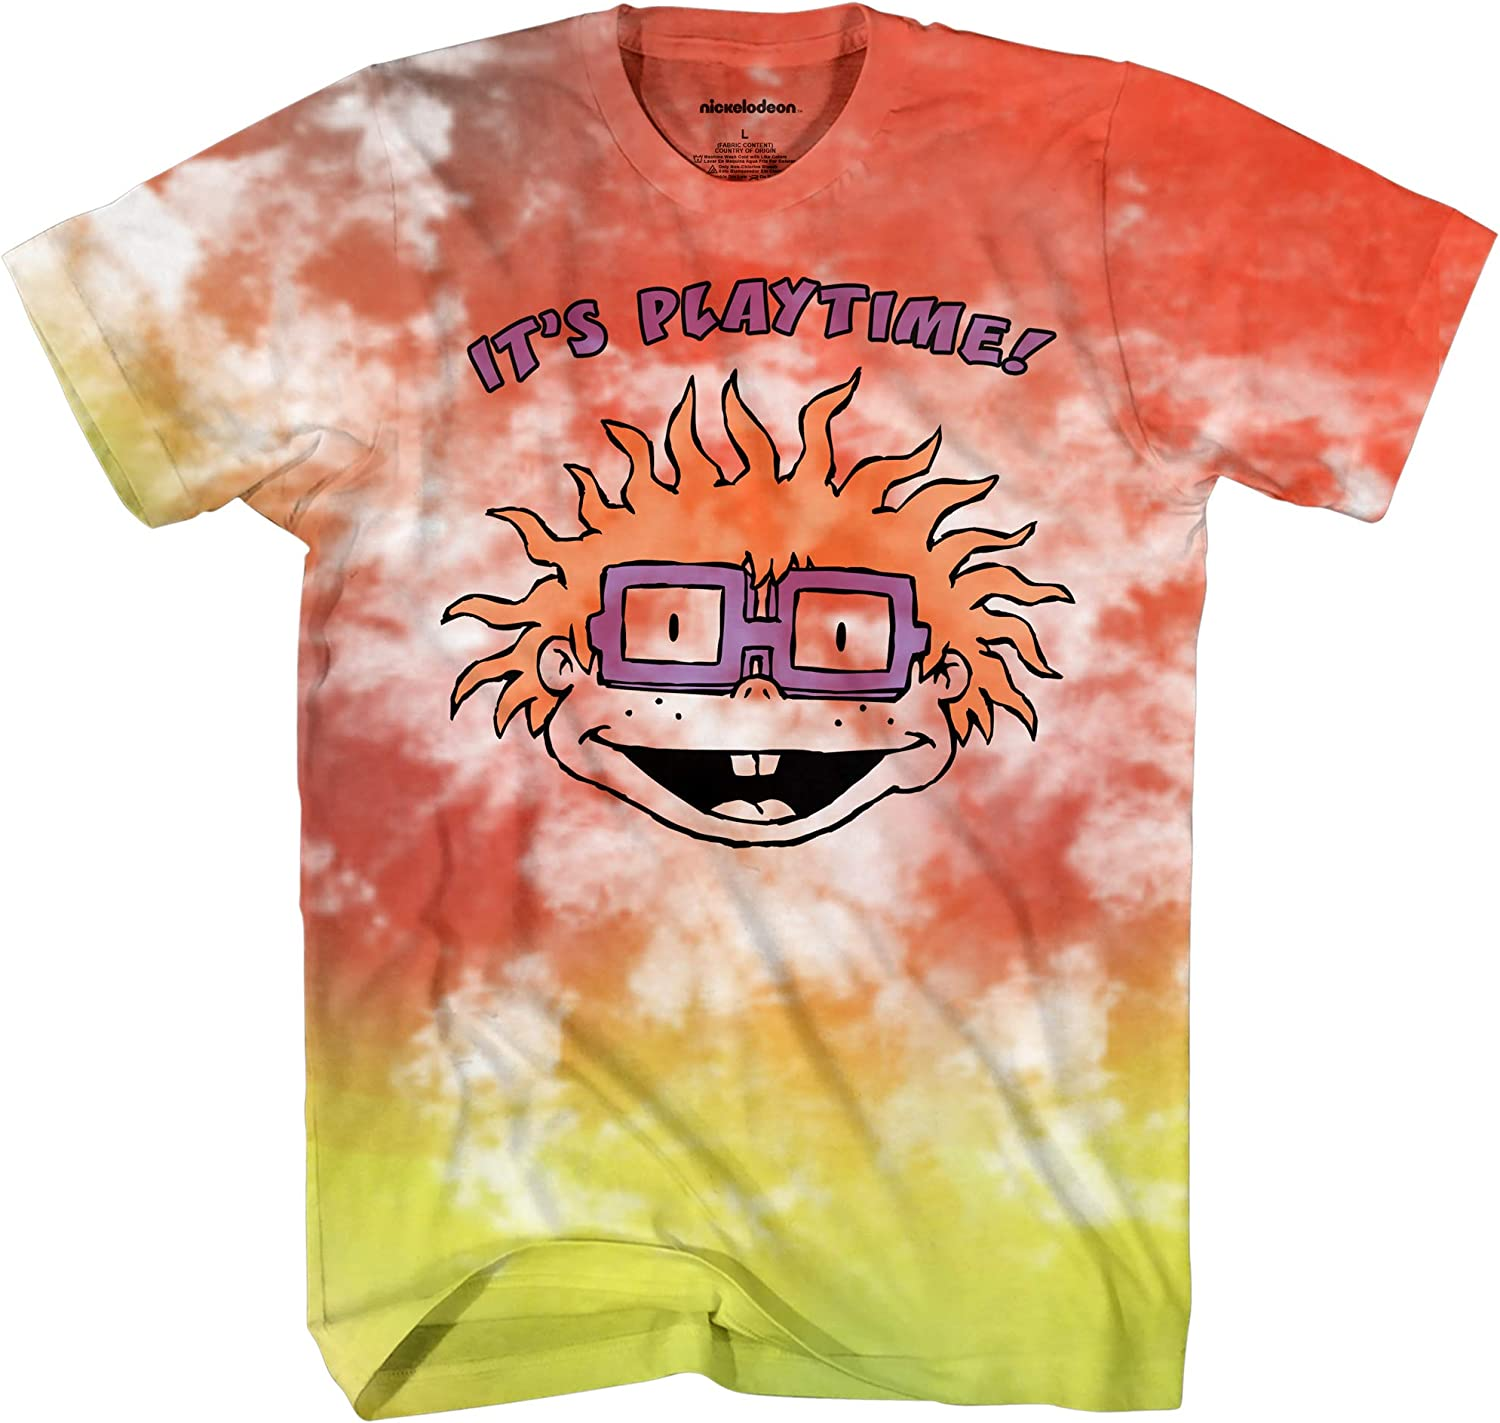 Nickelodeon Mens 90's Classic Shirt - Rugrats, Invader Zim, Ren & Stimpy, and Hey Arnold Vintage T-Shirt